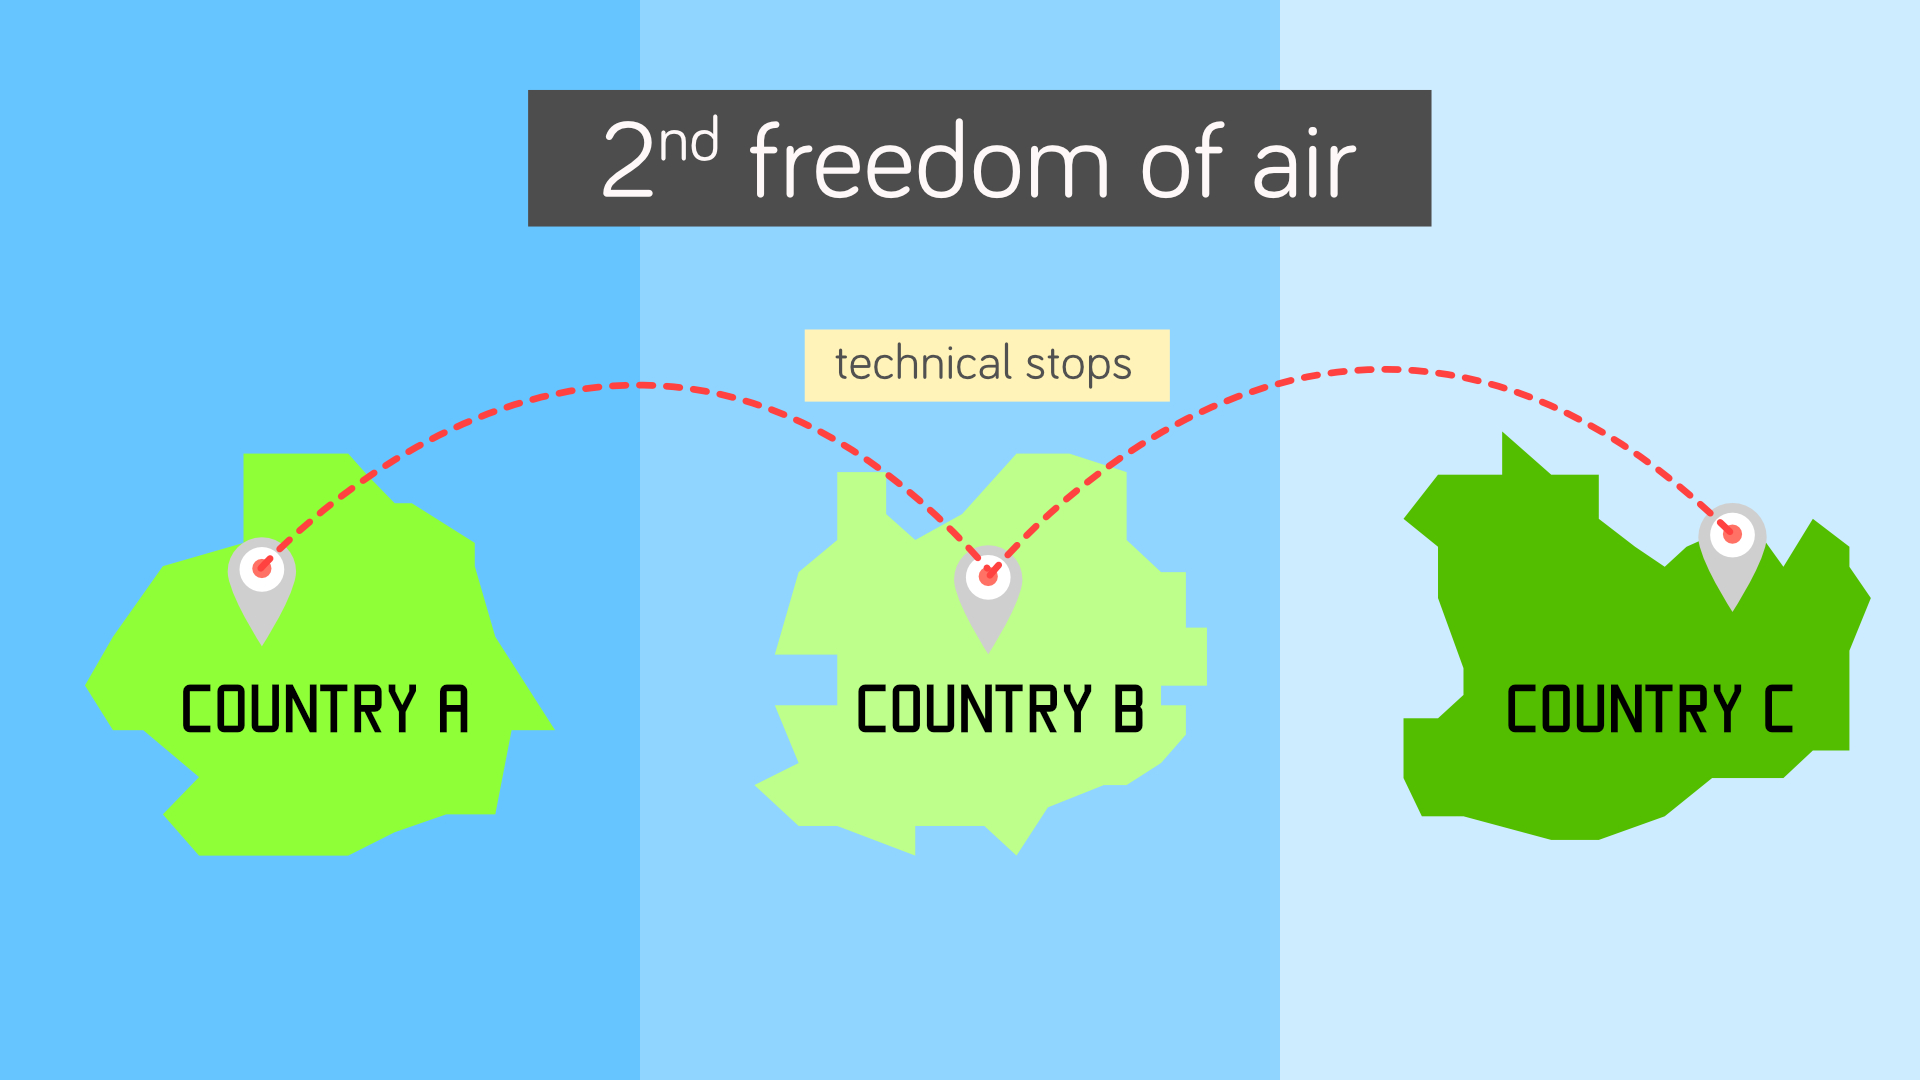 Second freedom allows airline to make technical stops.